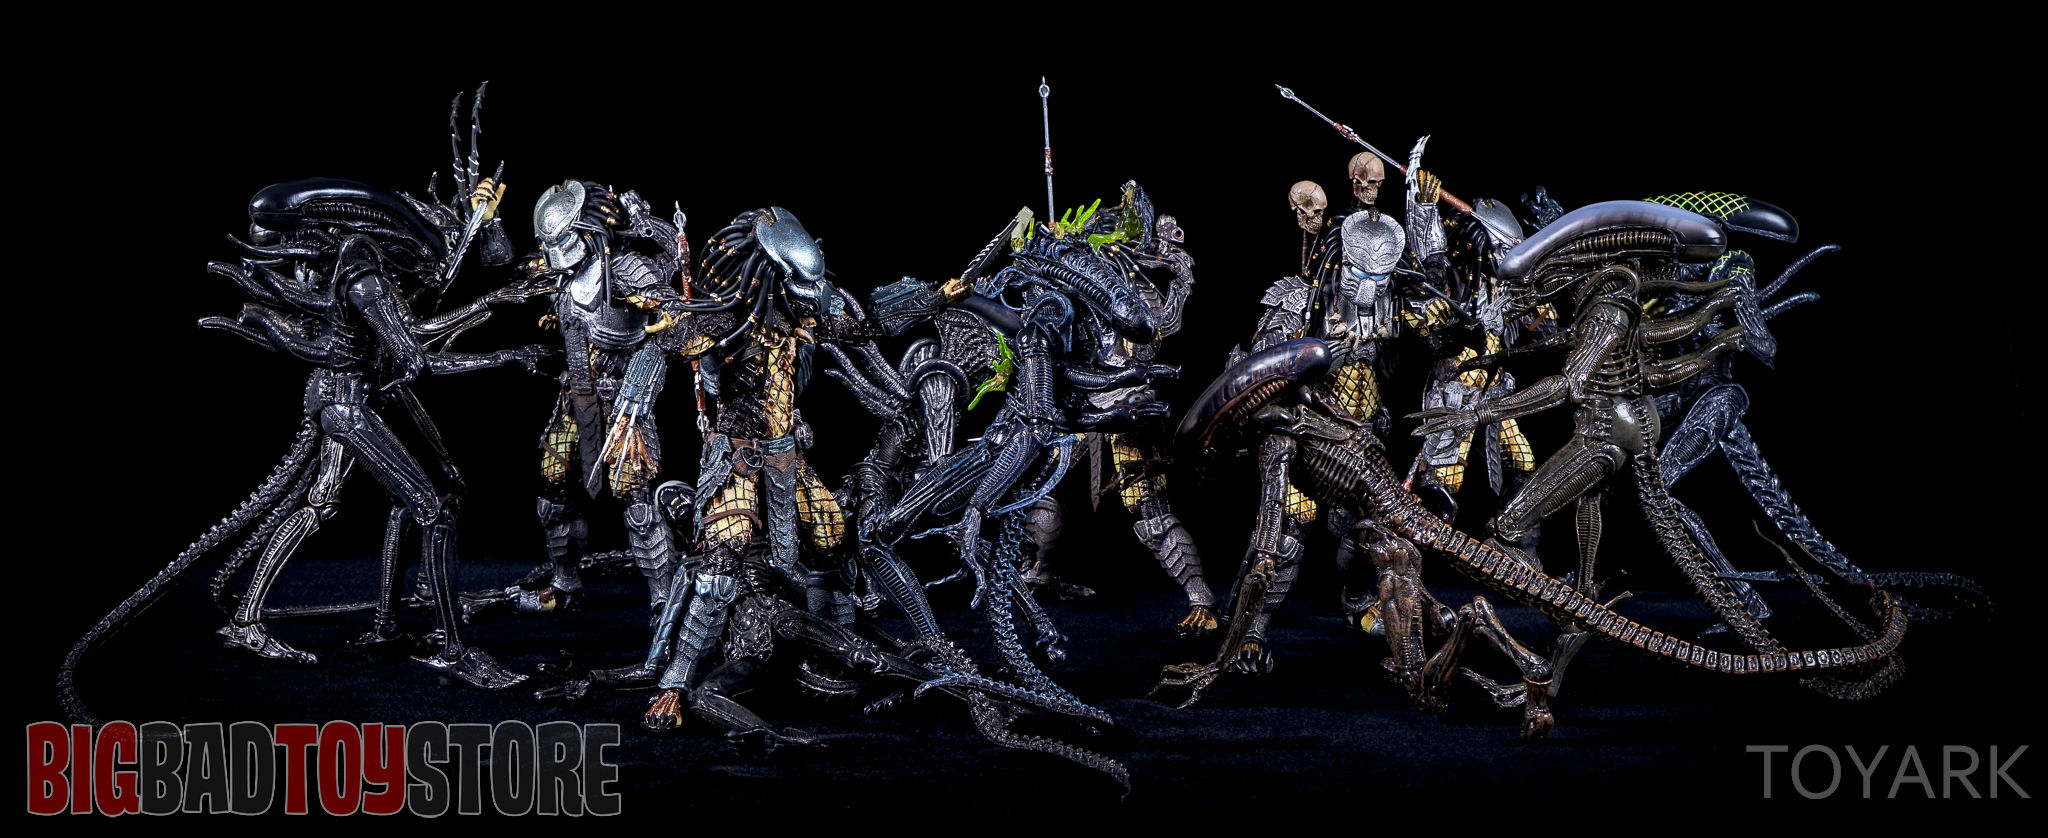 http://news.toyark.com/wp-content/uploads/sites/4/2016/05/NECA-Predator-Series-15-AvP-076.jpg